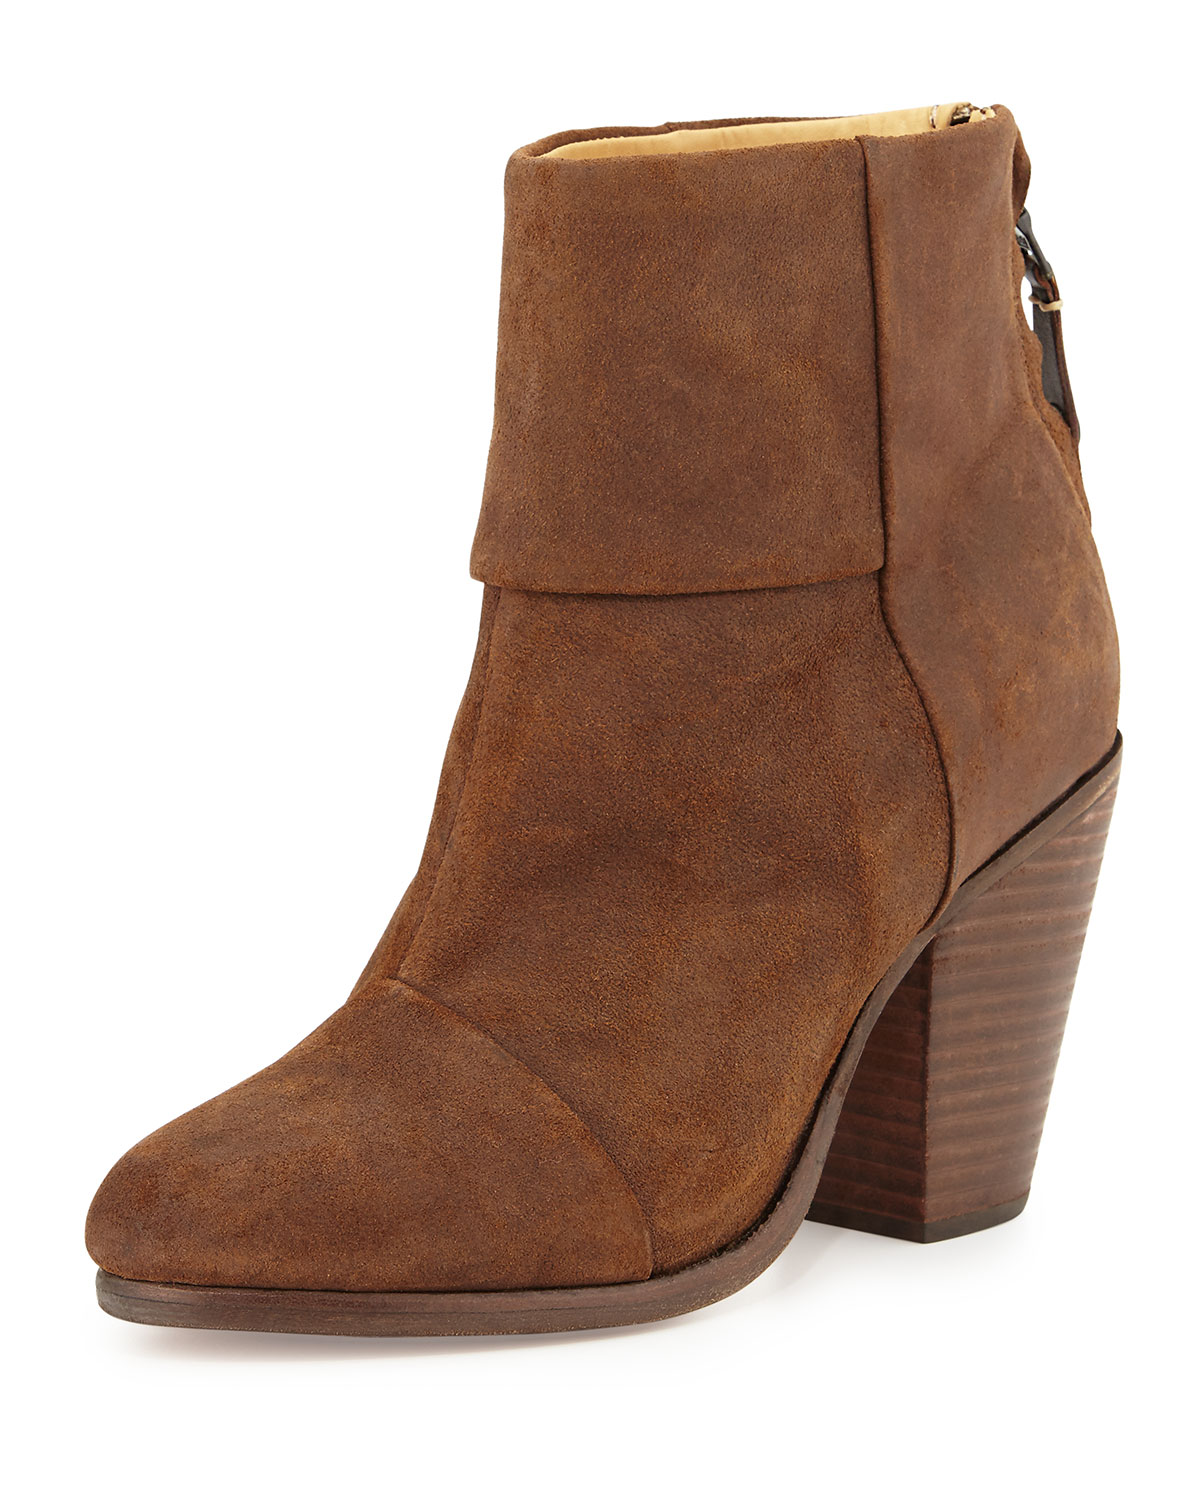 Classic Newbury Leather Ankle Boot, Brown - Rag & Bone